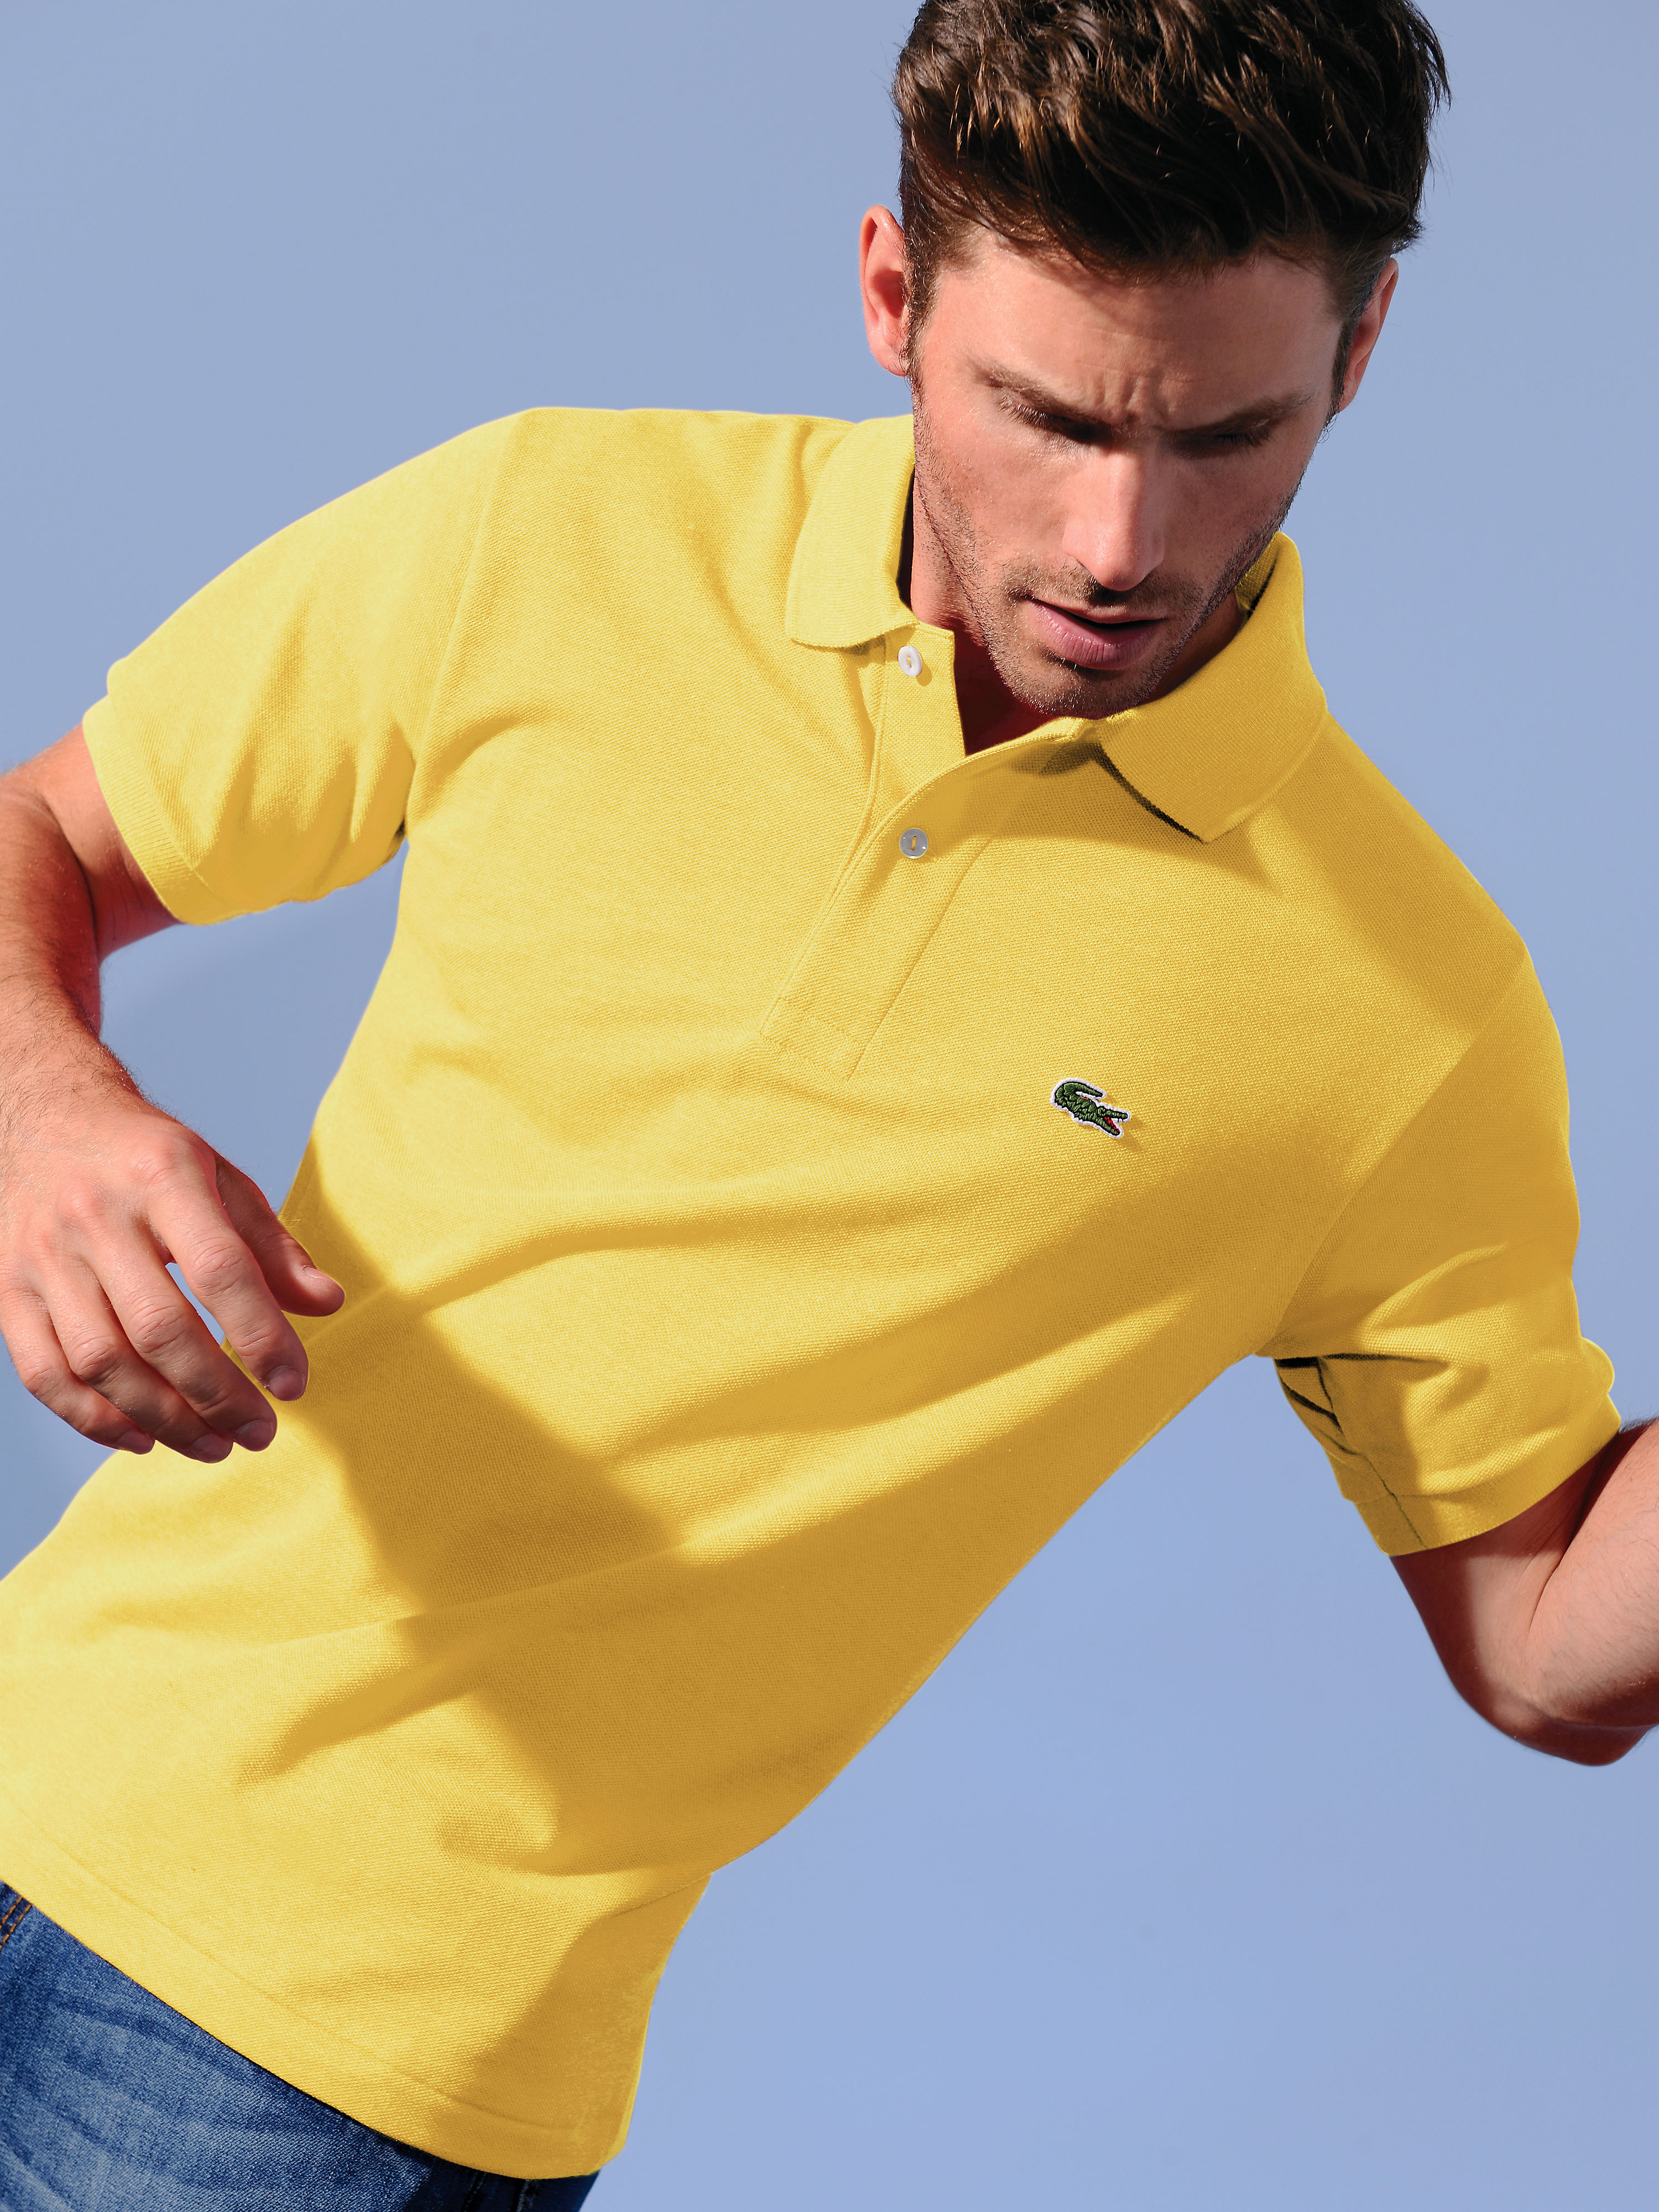 Polo shirt from Lacoste yellow